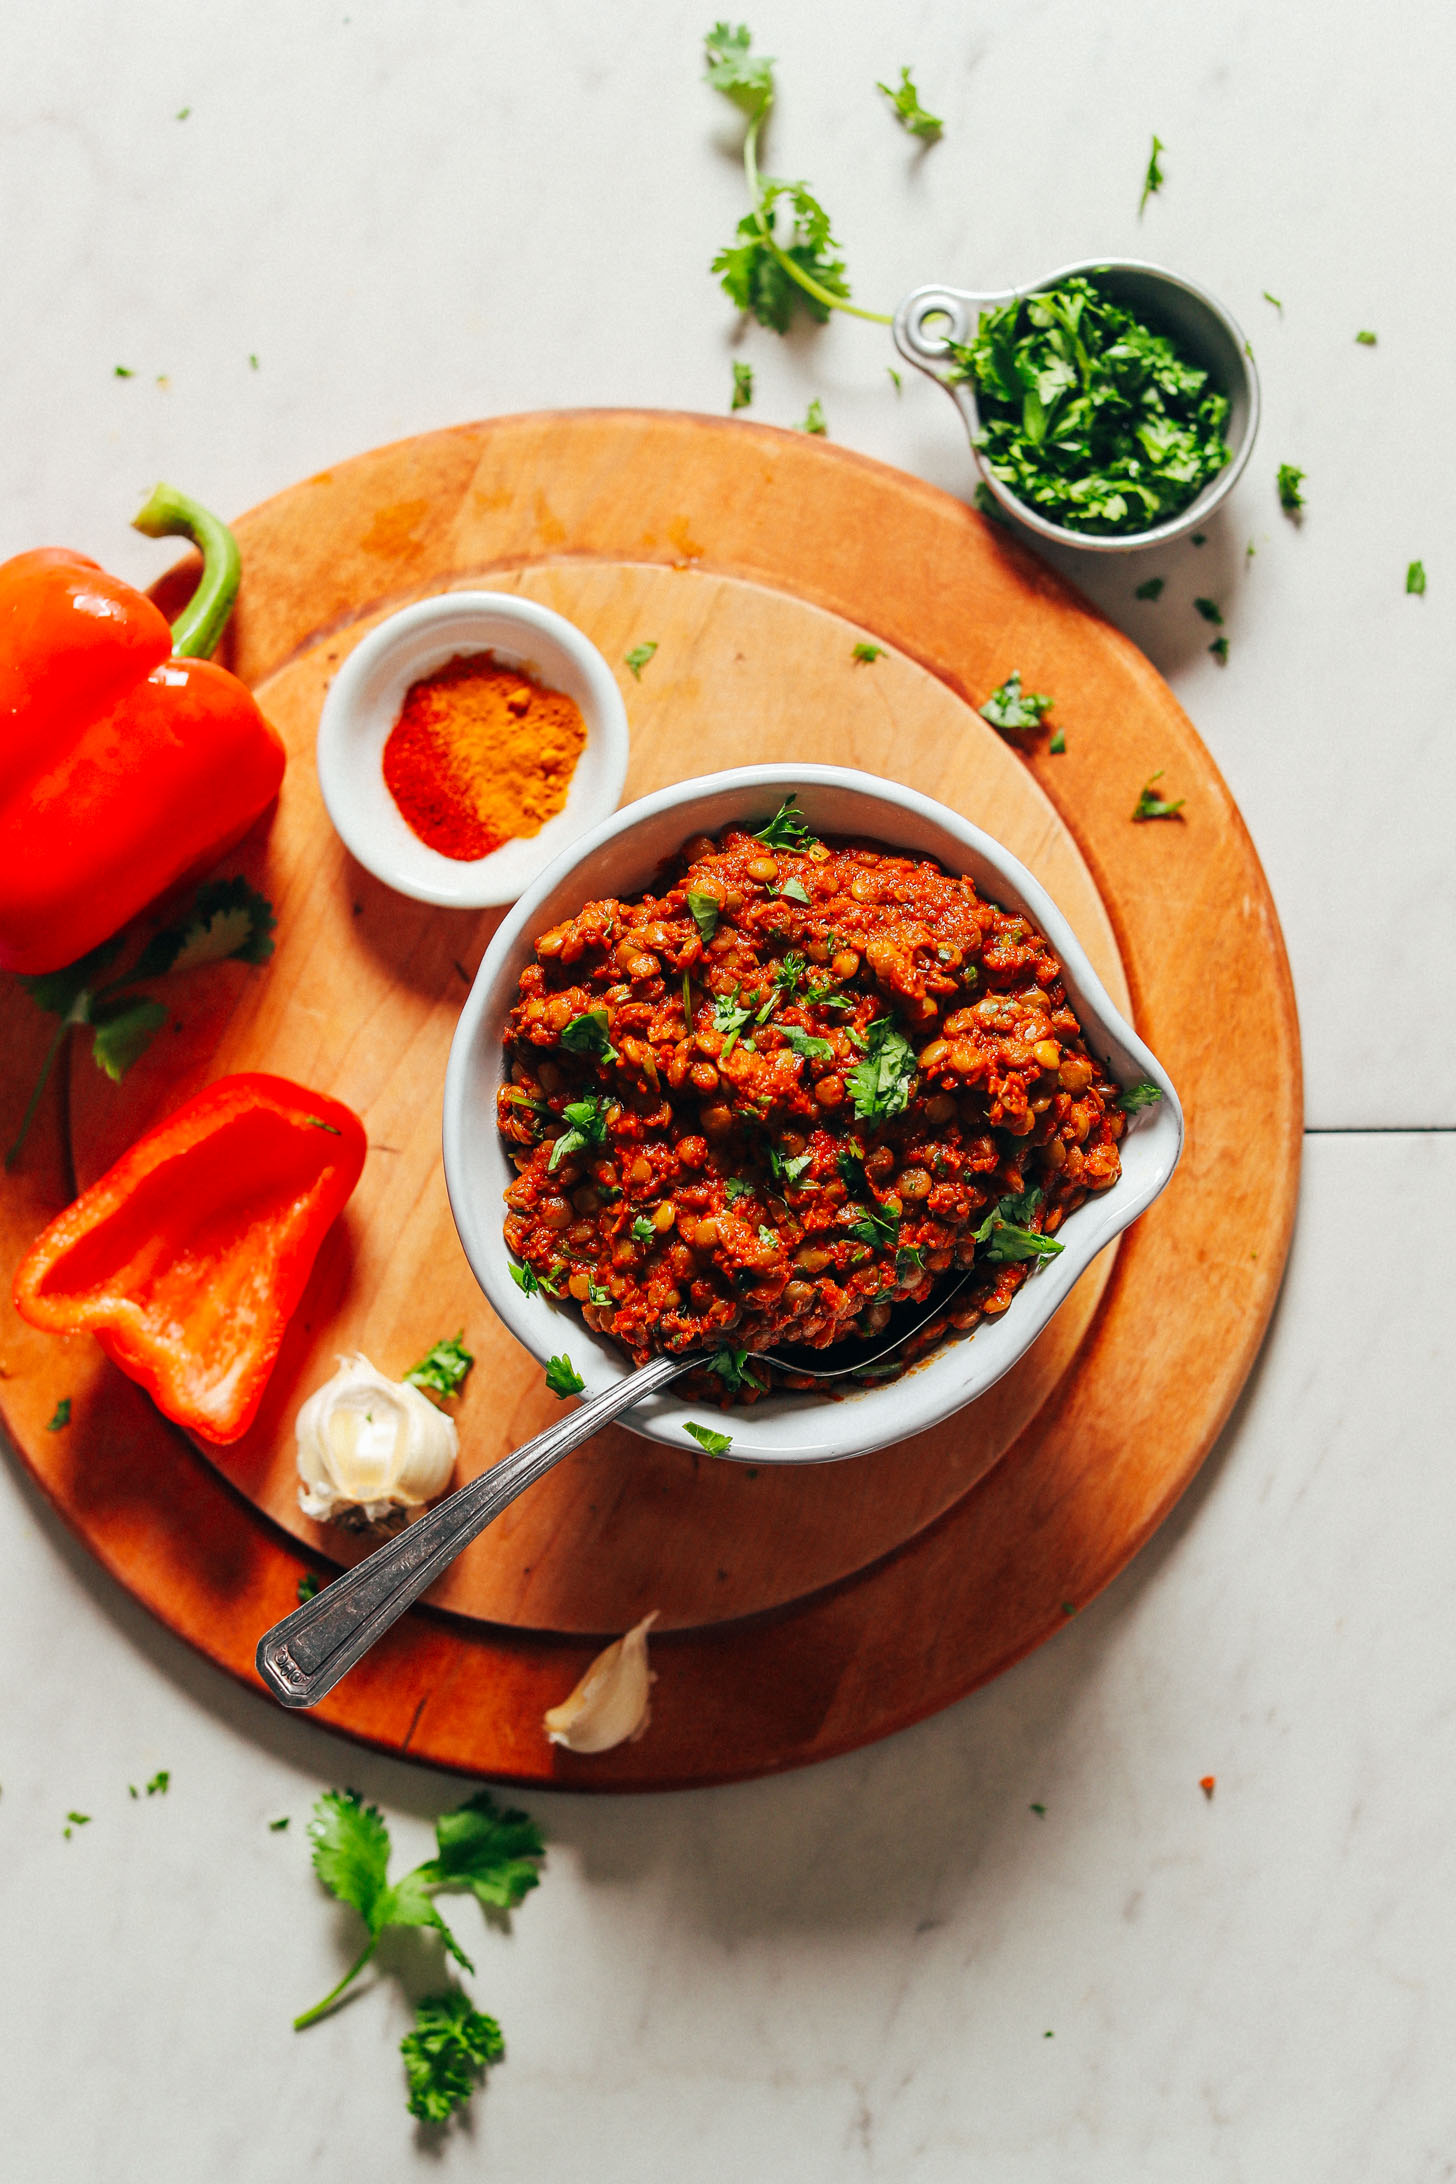 Big bowl of Moroccan Spiced Lentils surrounded by red bell pepper, garlic, fresh parsley, cilantro, and spices